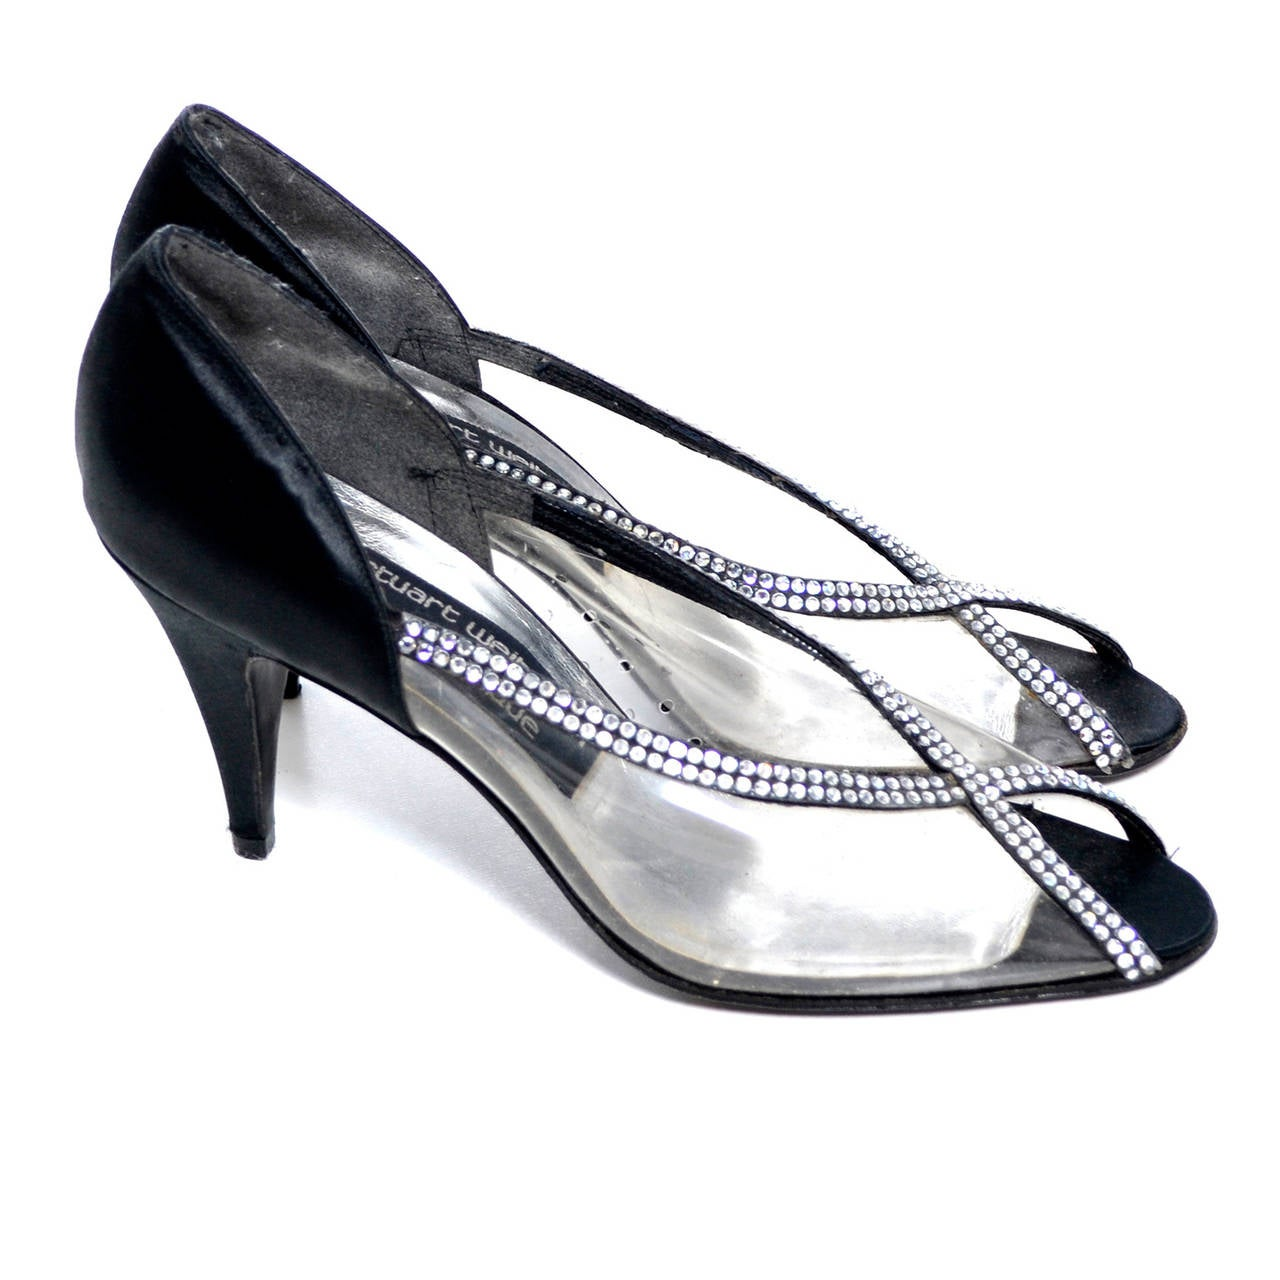 f565682a5 These beautiful vintage black satin shoes from Stuart Weitzman for  Martinique have never been worn.